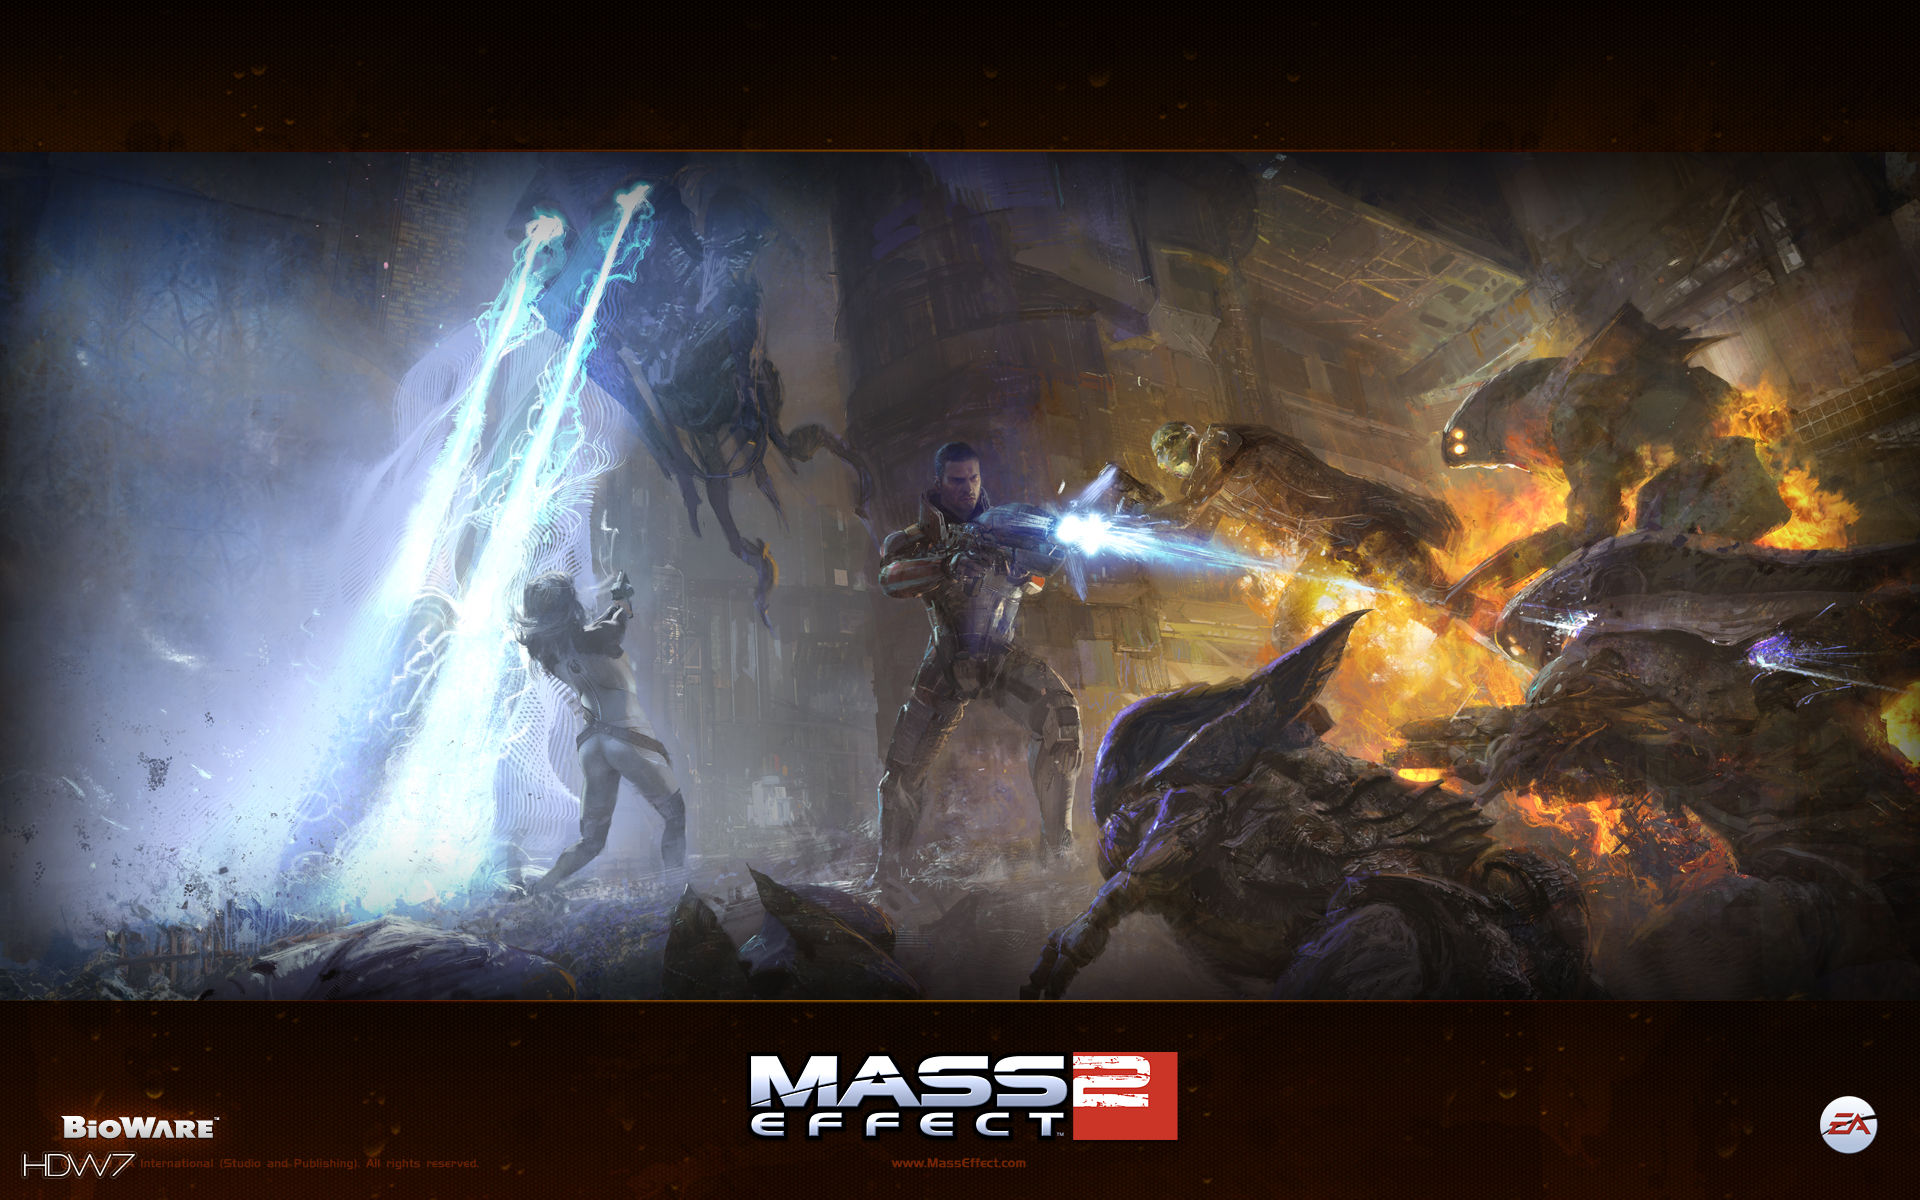 mass effect 2 mullins widescreen wallpaper